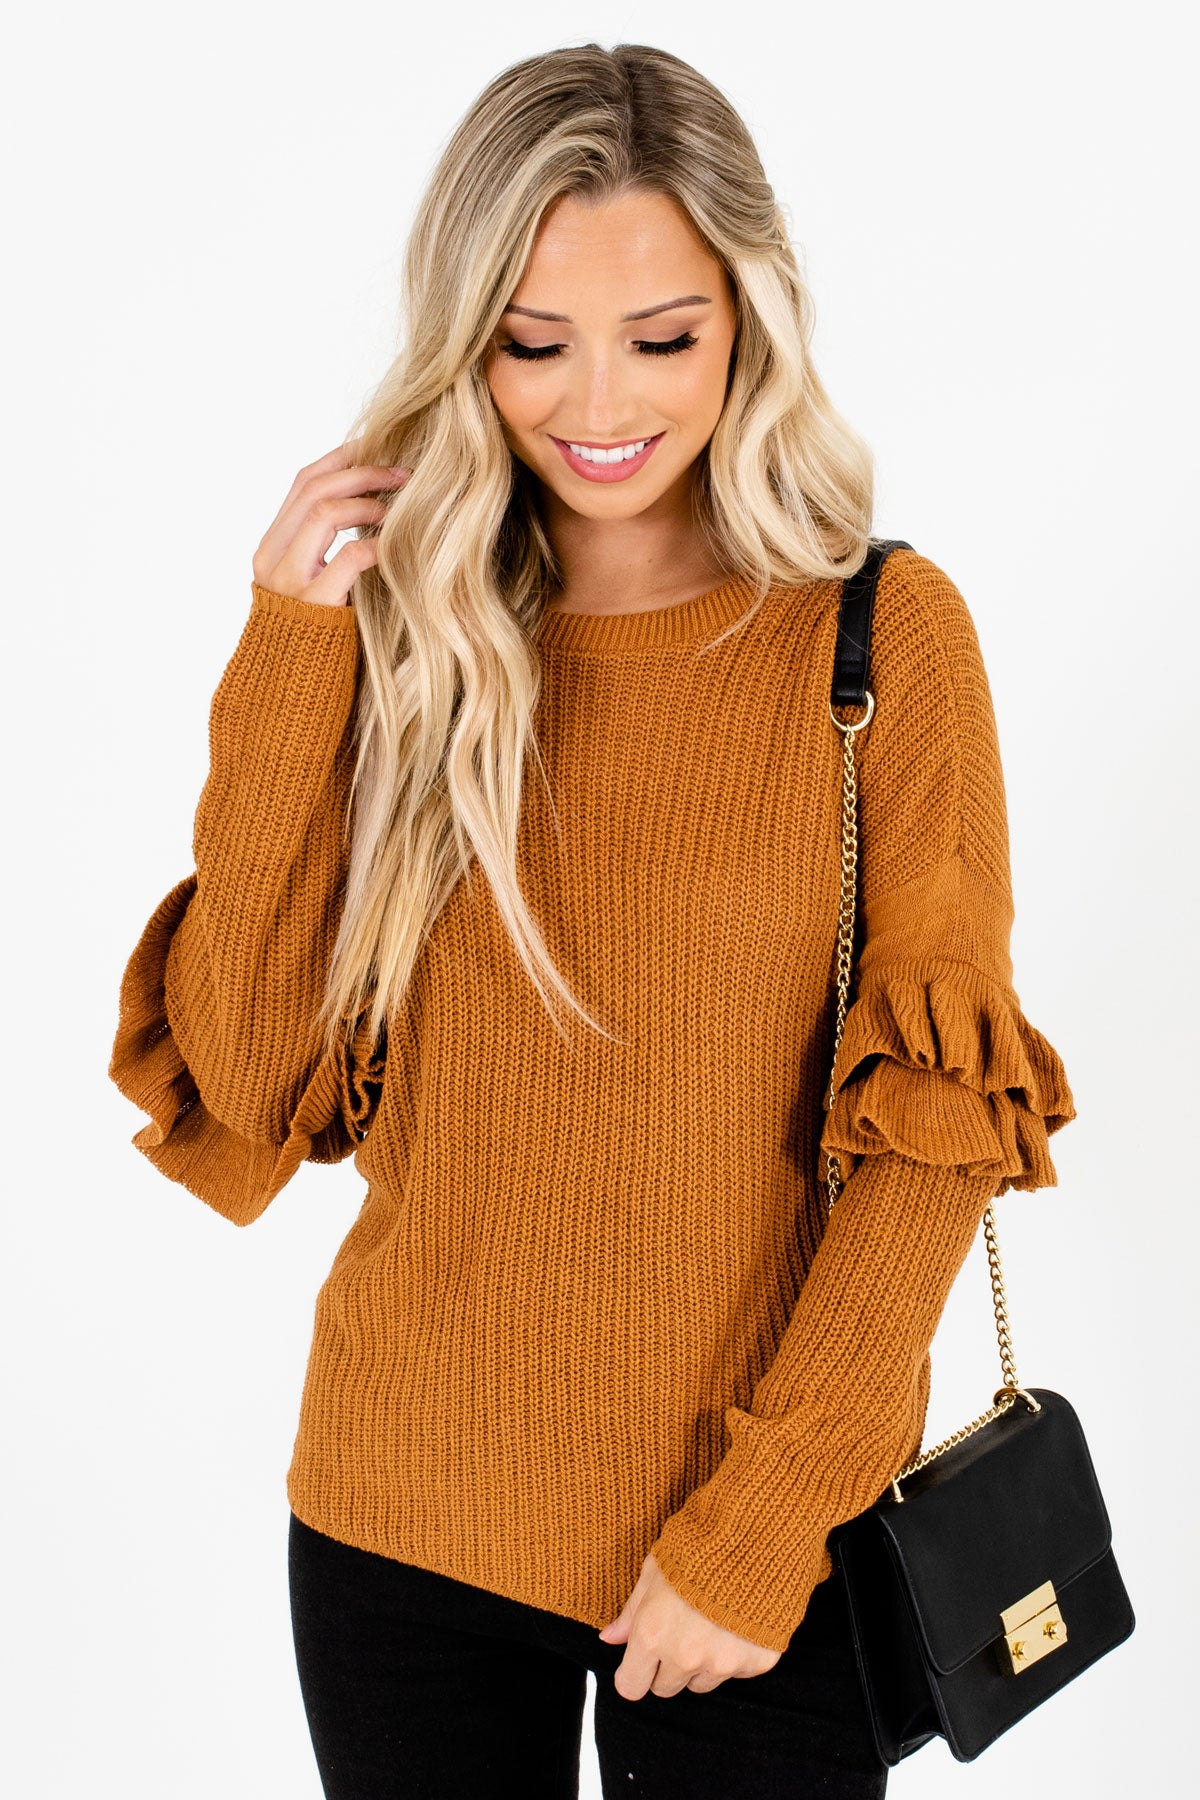 Orange High-Quality Knit Boutique Sweaters for Women